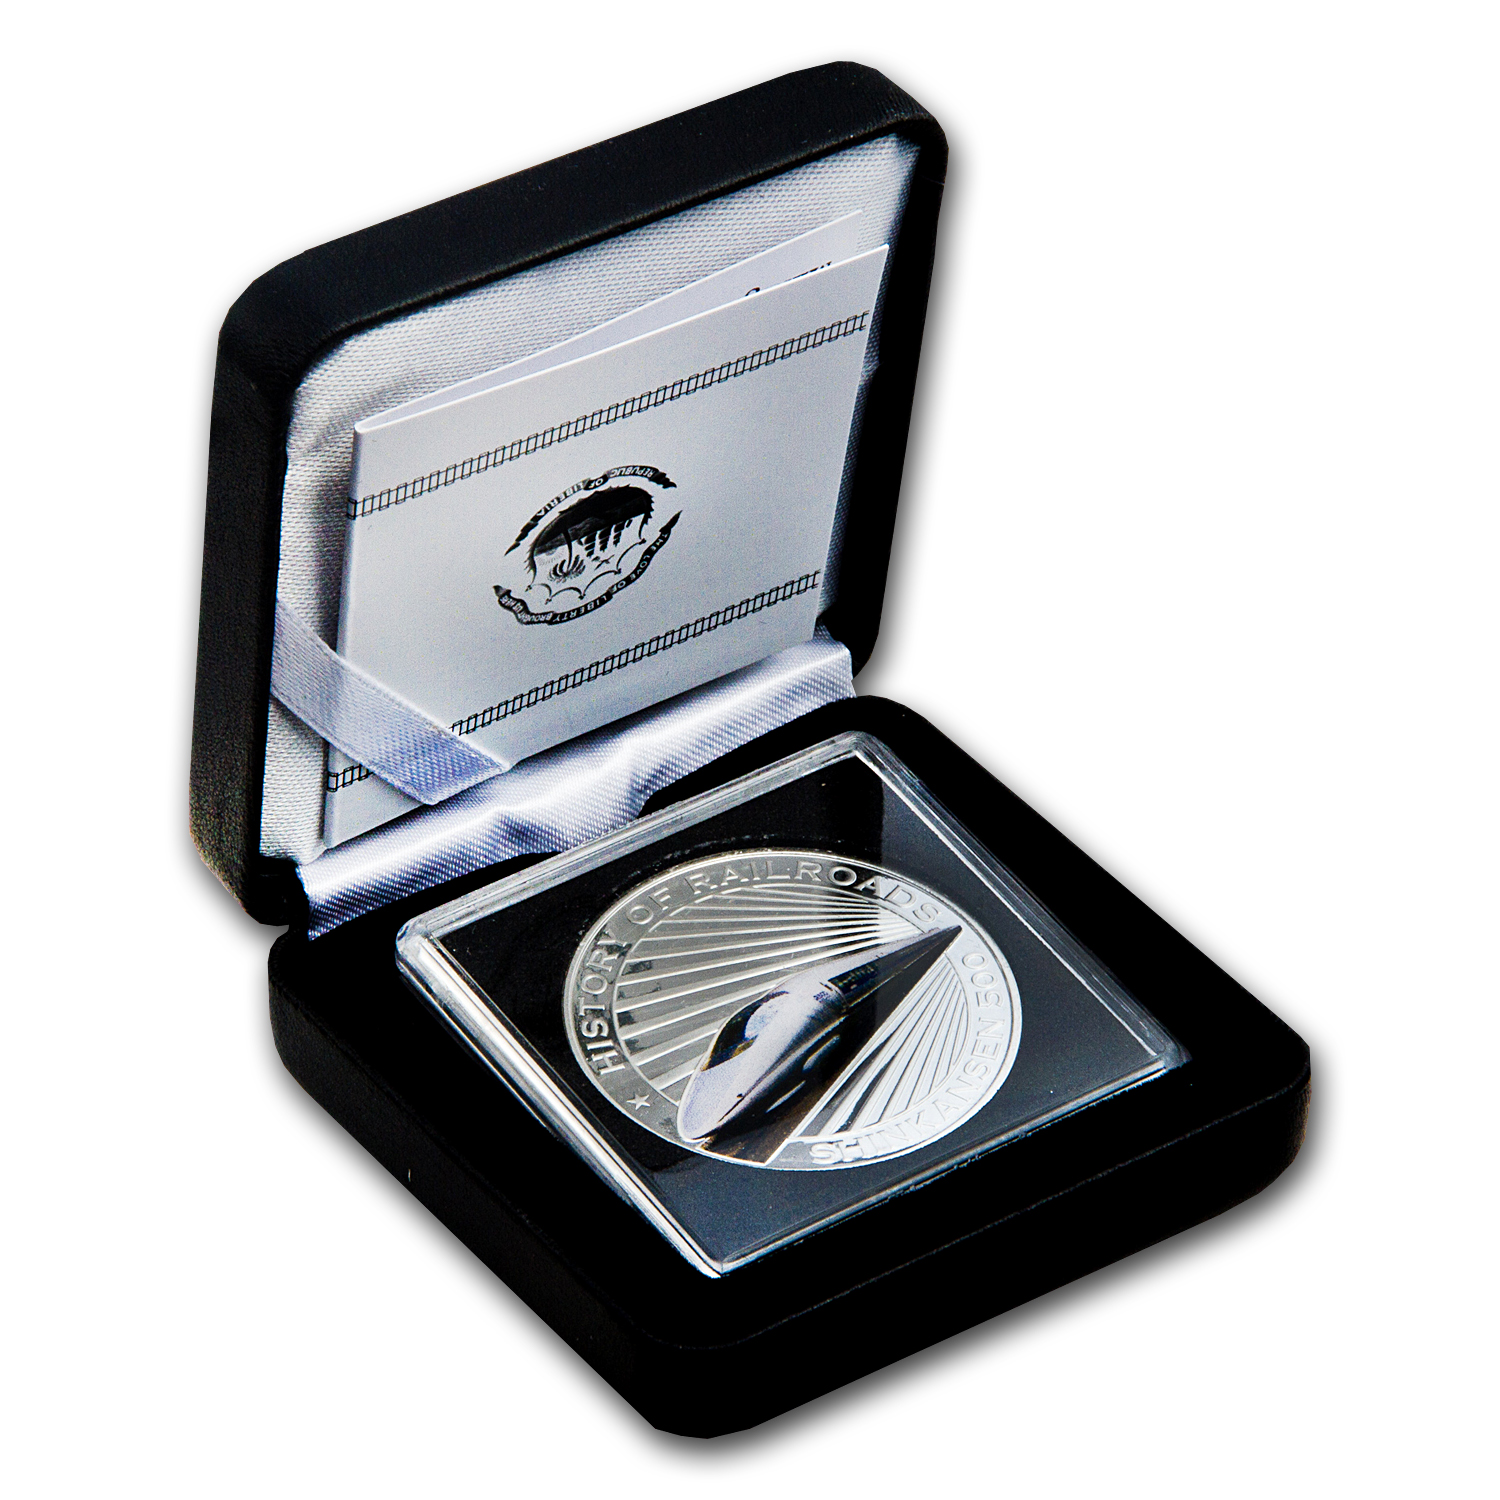 2011 Liberia Silver $5 Bullet Train Shinkansen Proof